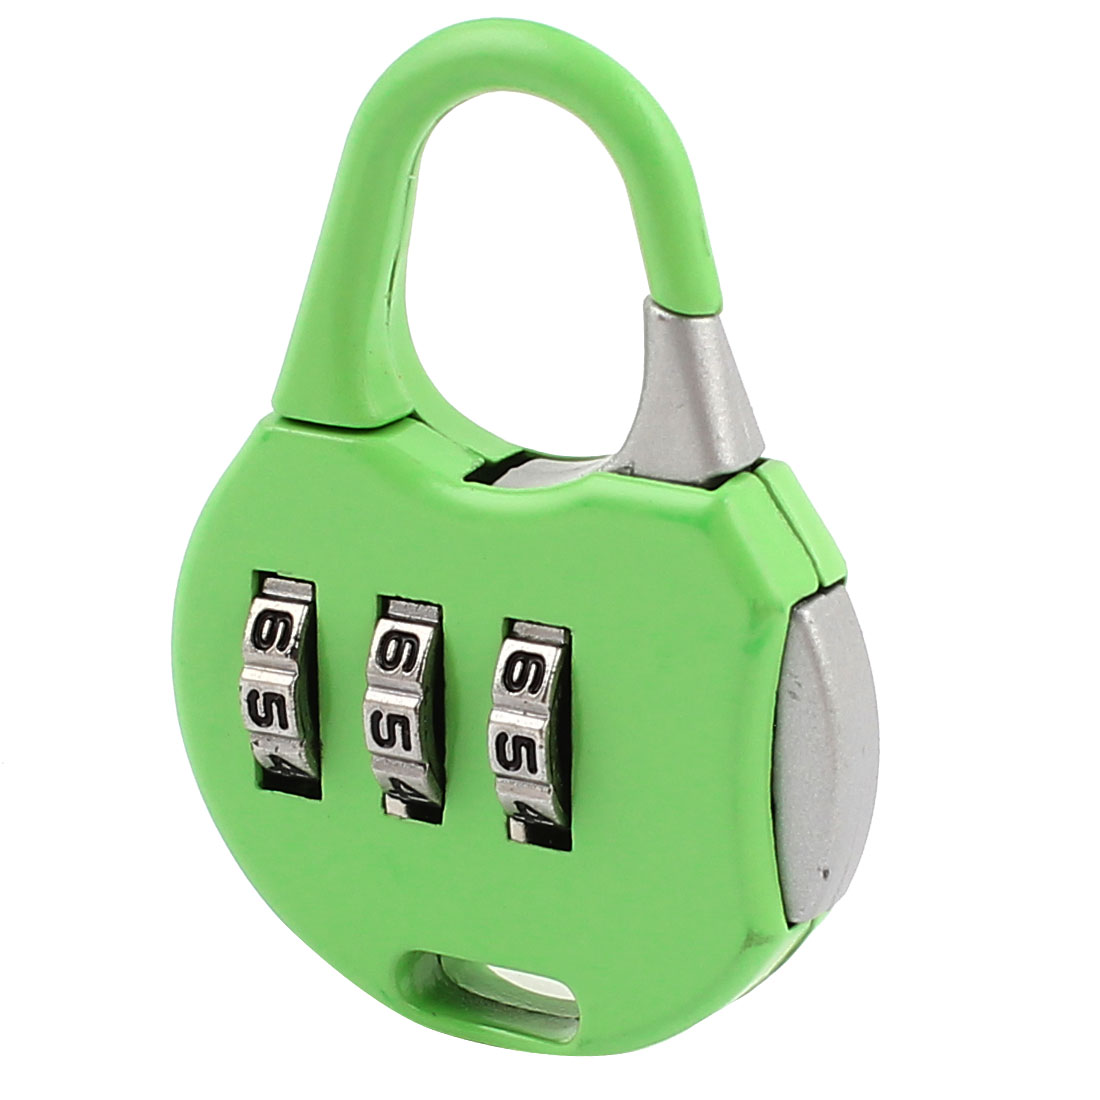 Green 3 Digits Security Password Combination Coded Luggage Padlock Lock